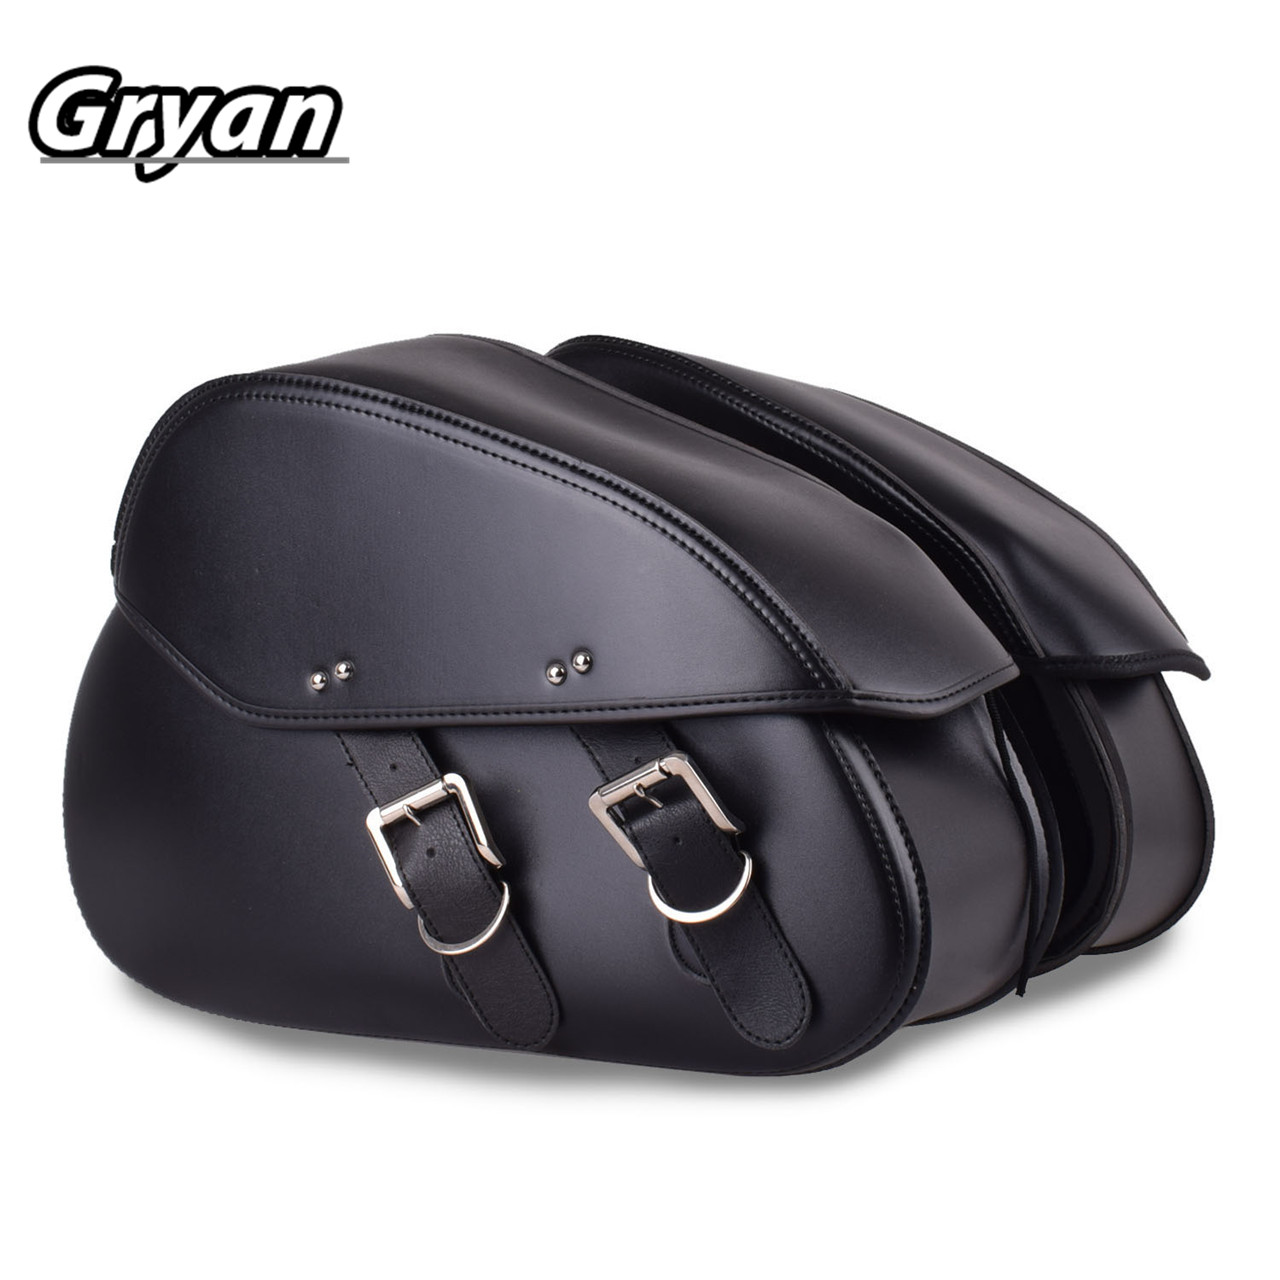 High Capacity Motorcycle Saddlebag leather motorcycle bag For Harley Sportster XL 883 XL 1200 For BMW R1200GS outdoor BagsHigh Capacity Motorcycle Saddlebag leather motorcycle bag For Harley Sportster XL 883 XL 1200 For BMW R1200GS outdoor Bags